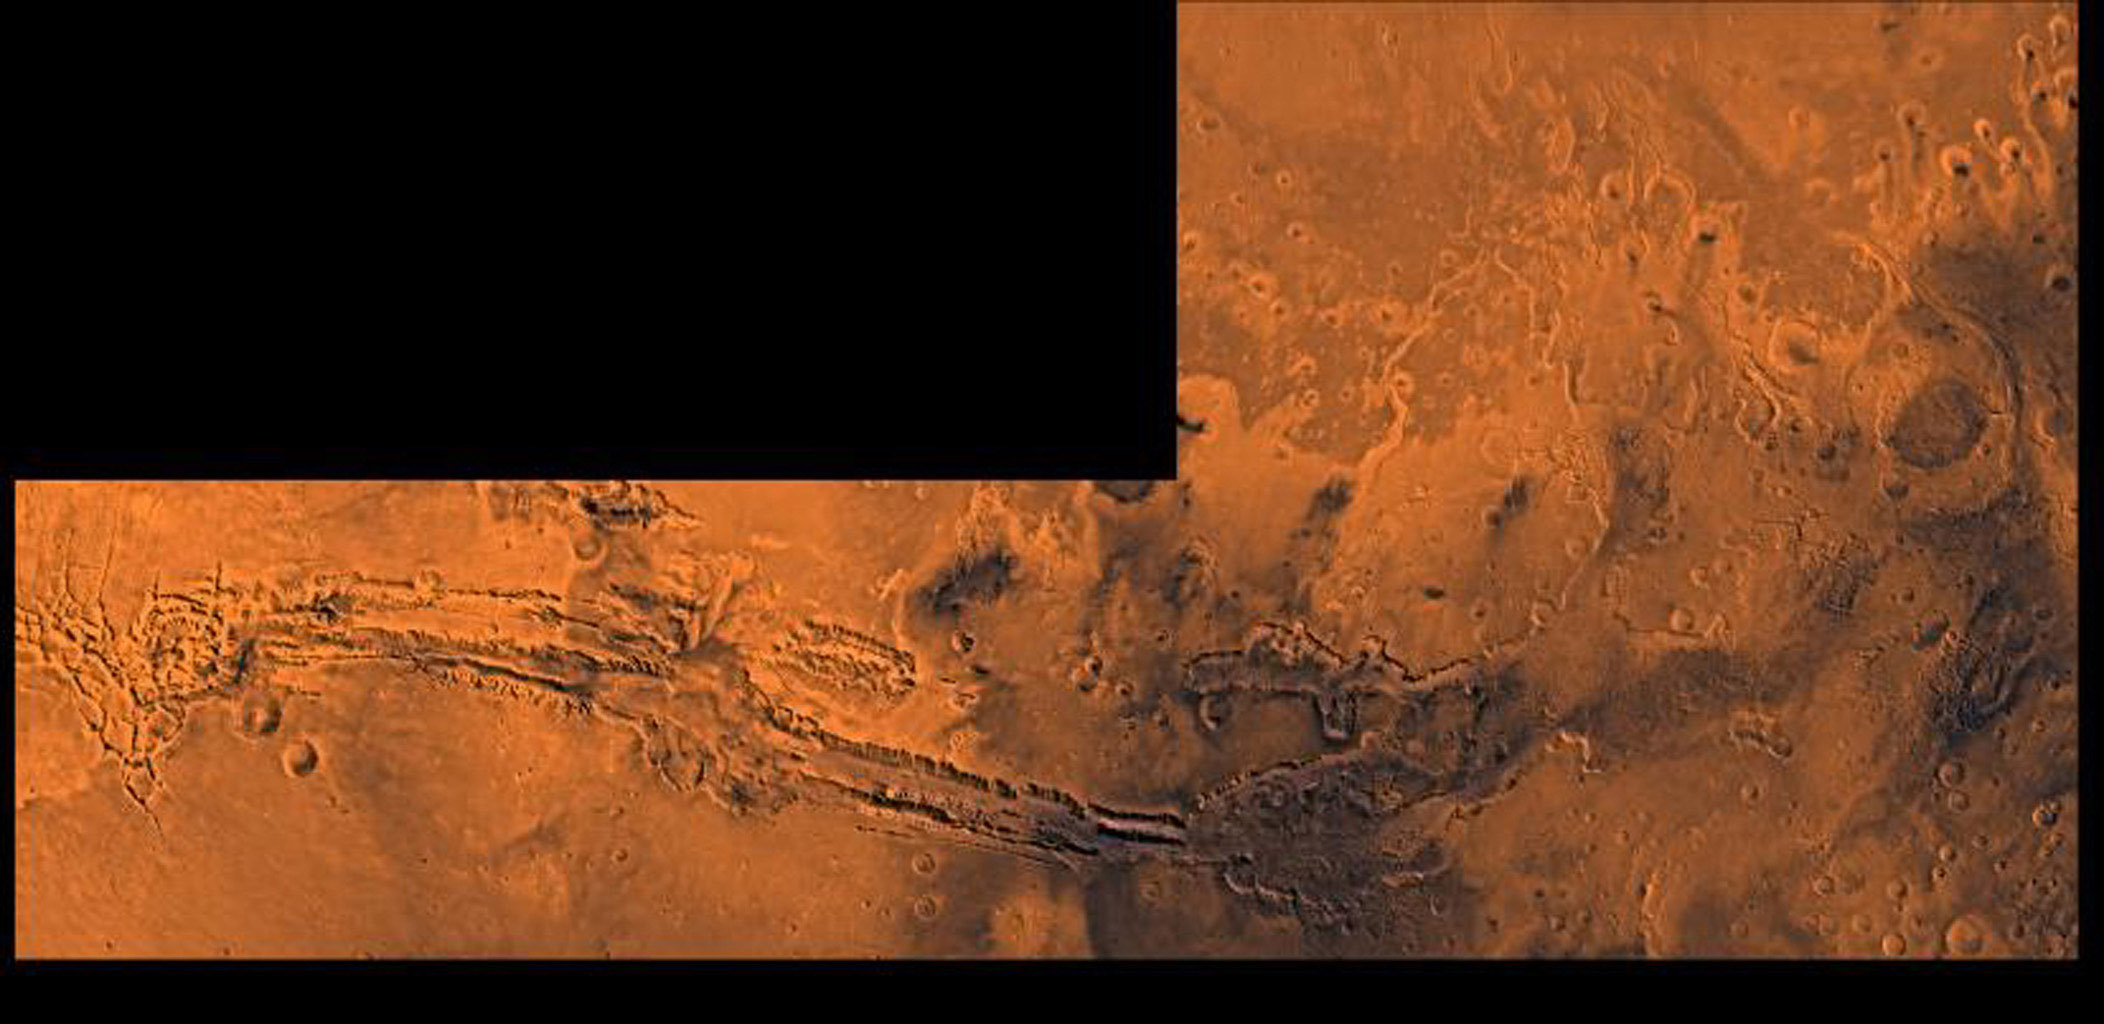 Valles Marineris, the great canyon and the south Chryse basin-Valles Marineris outflow channels of Mars. This scene shows the entire Valles Marineris canyon system extending from Noctis Labyrinthus, as seen by NASA's Viking spacecraft.